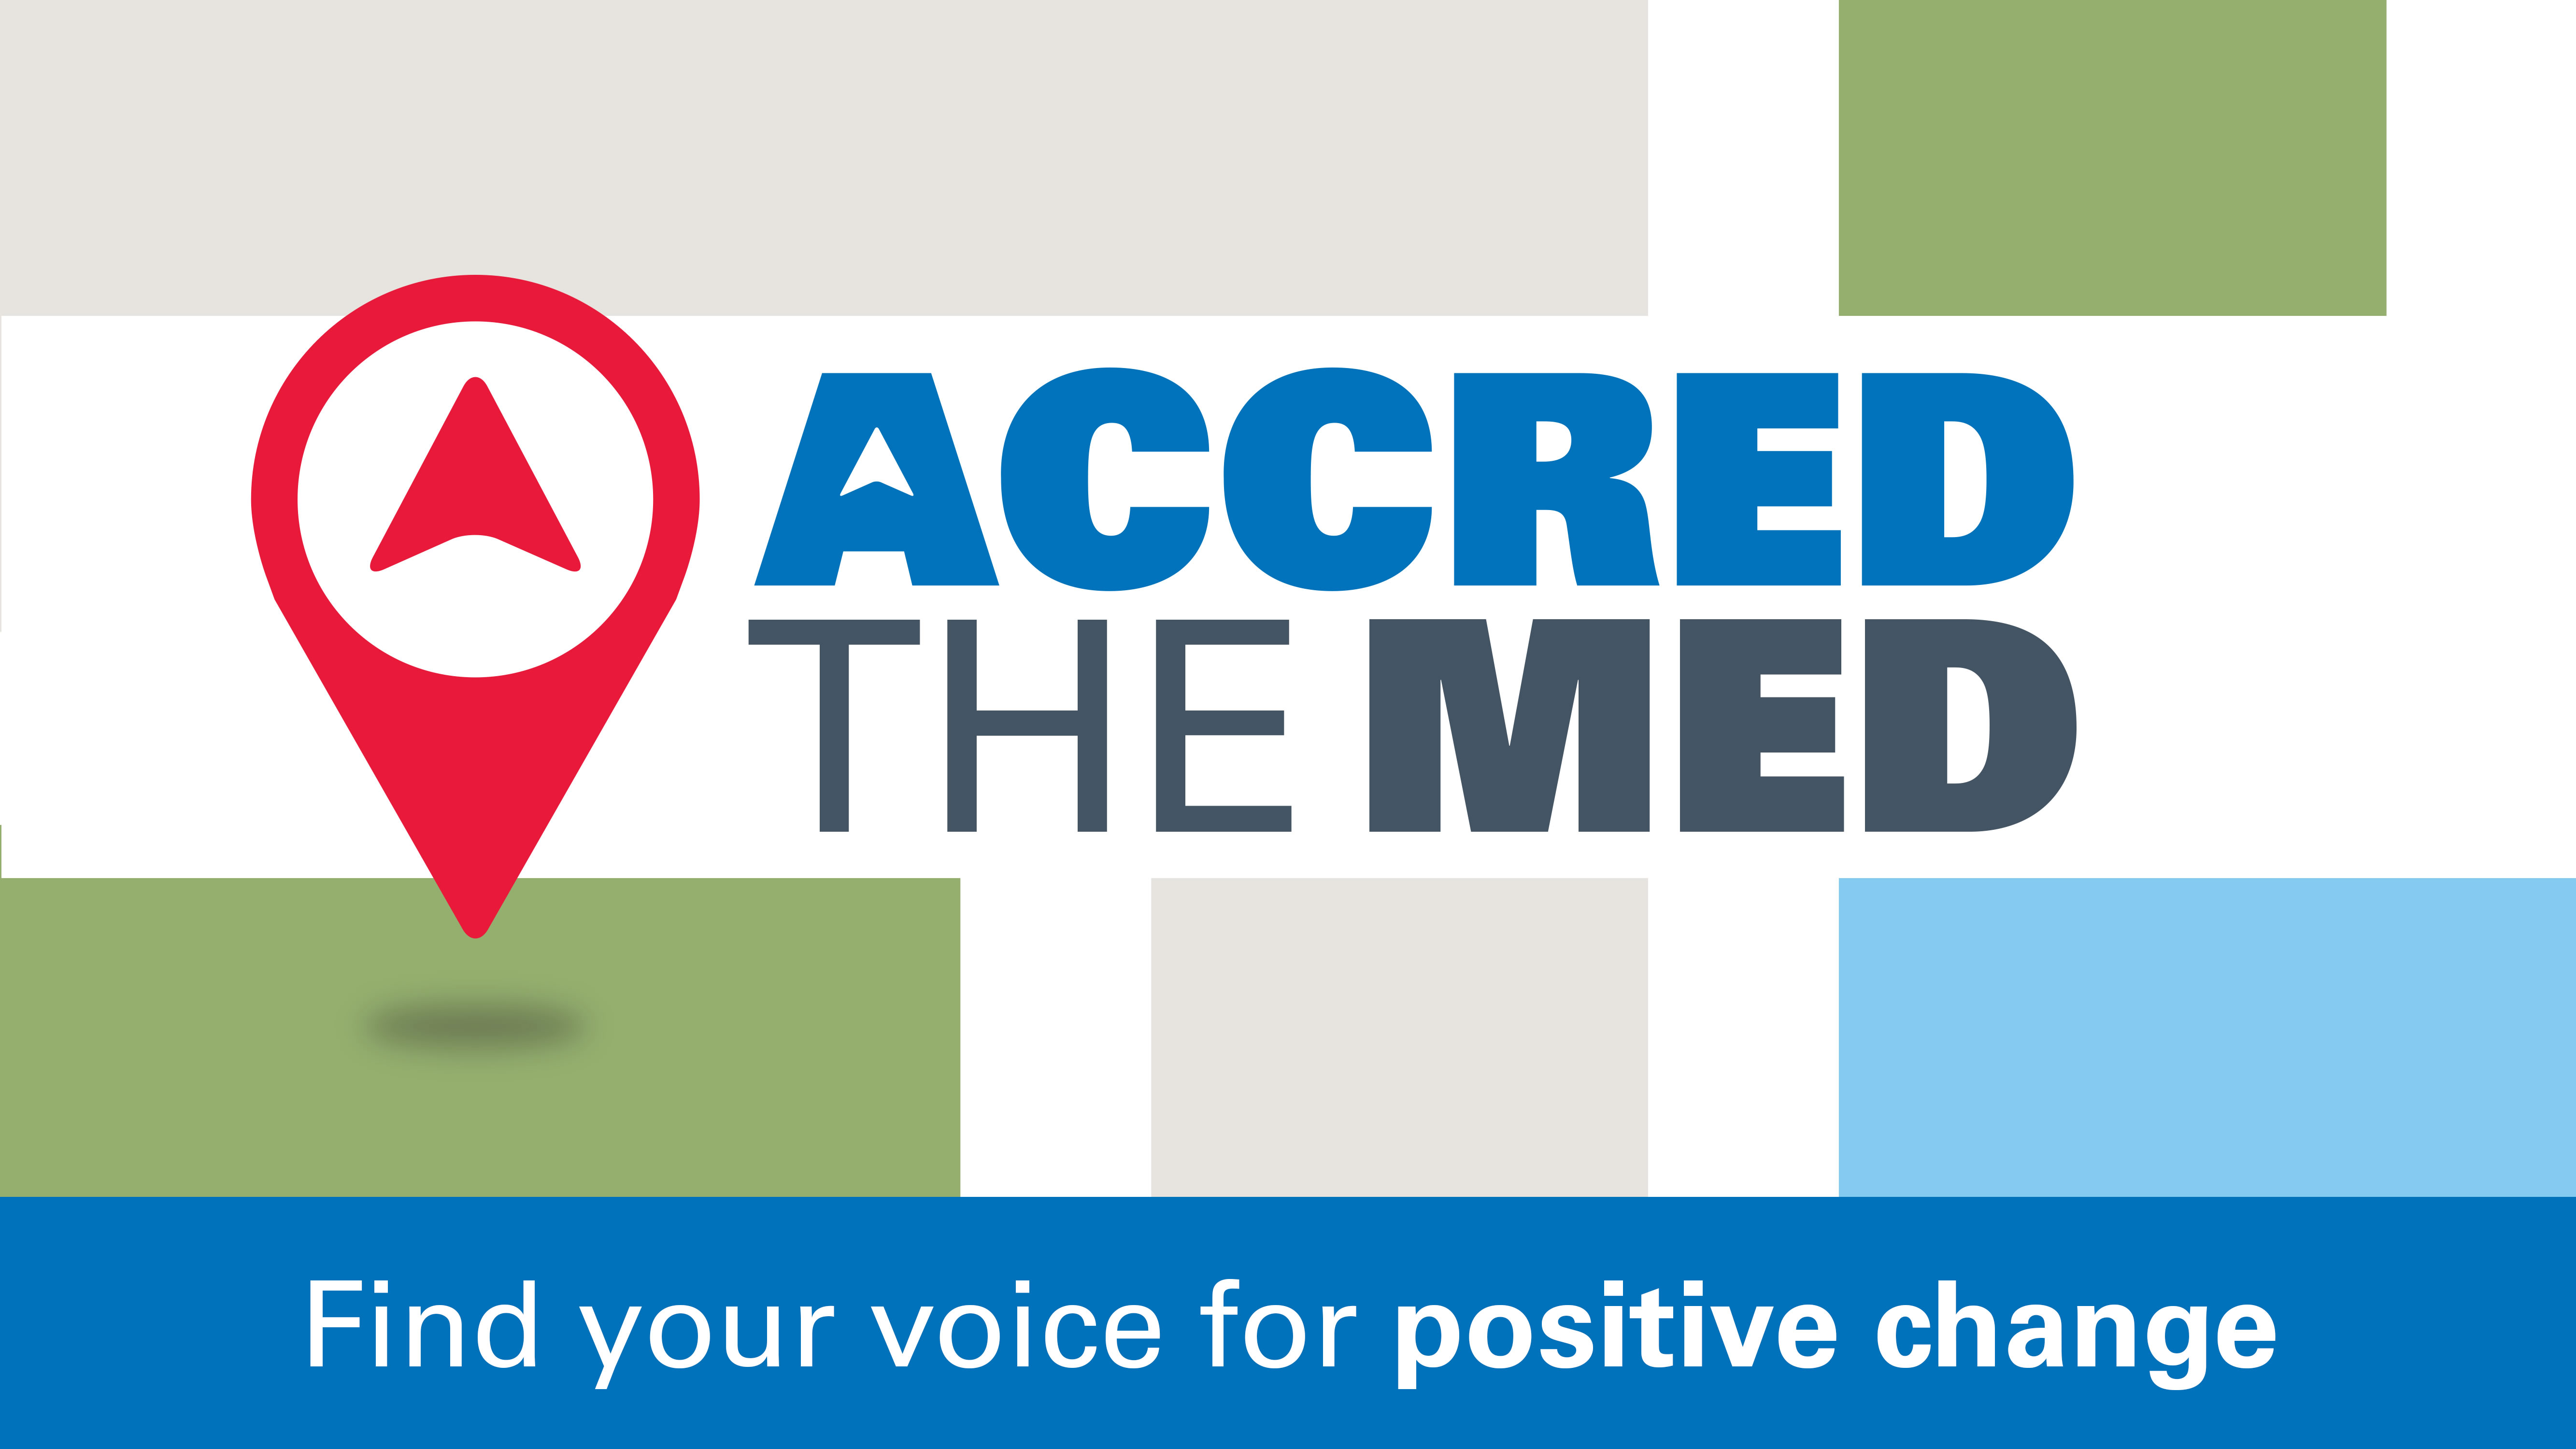 Accred The Med, Find your voice for positive change